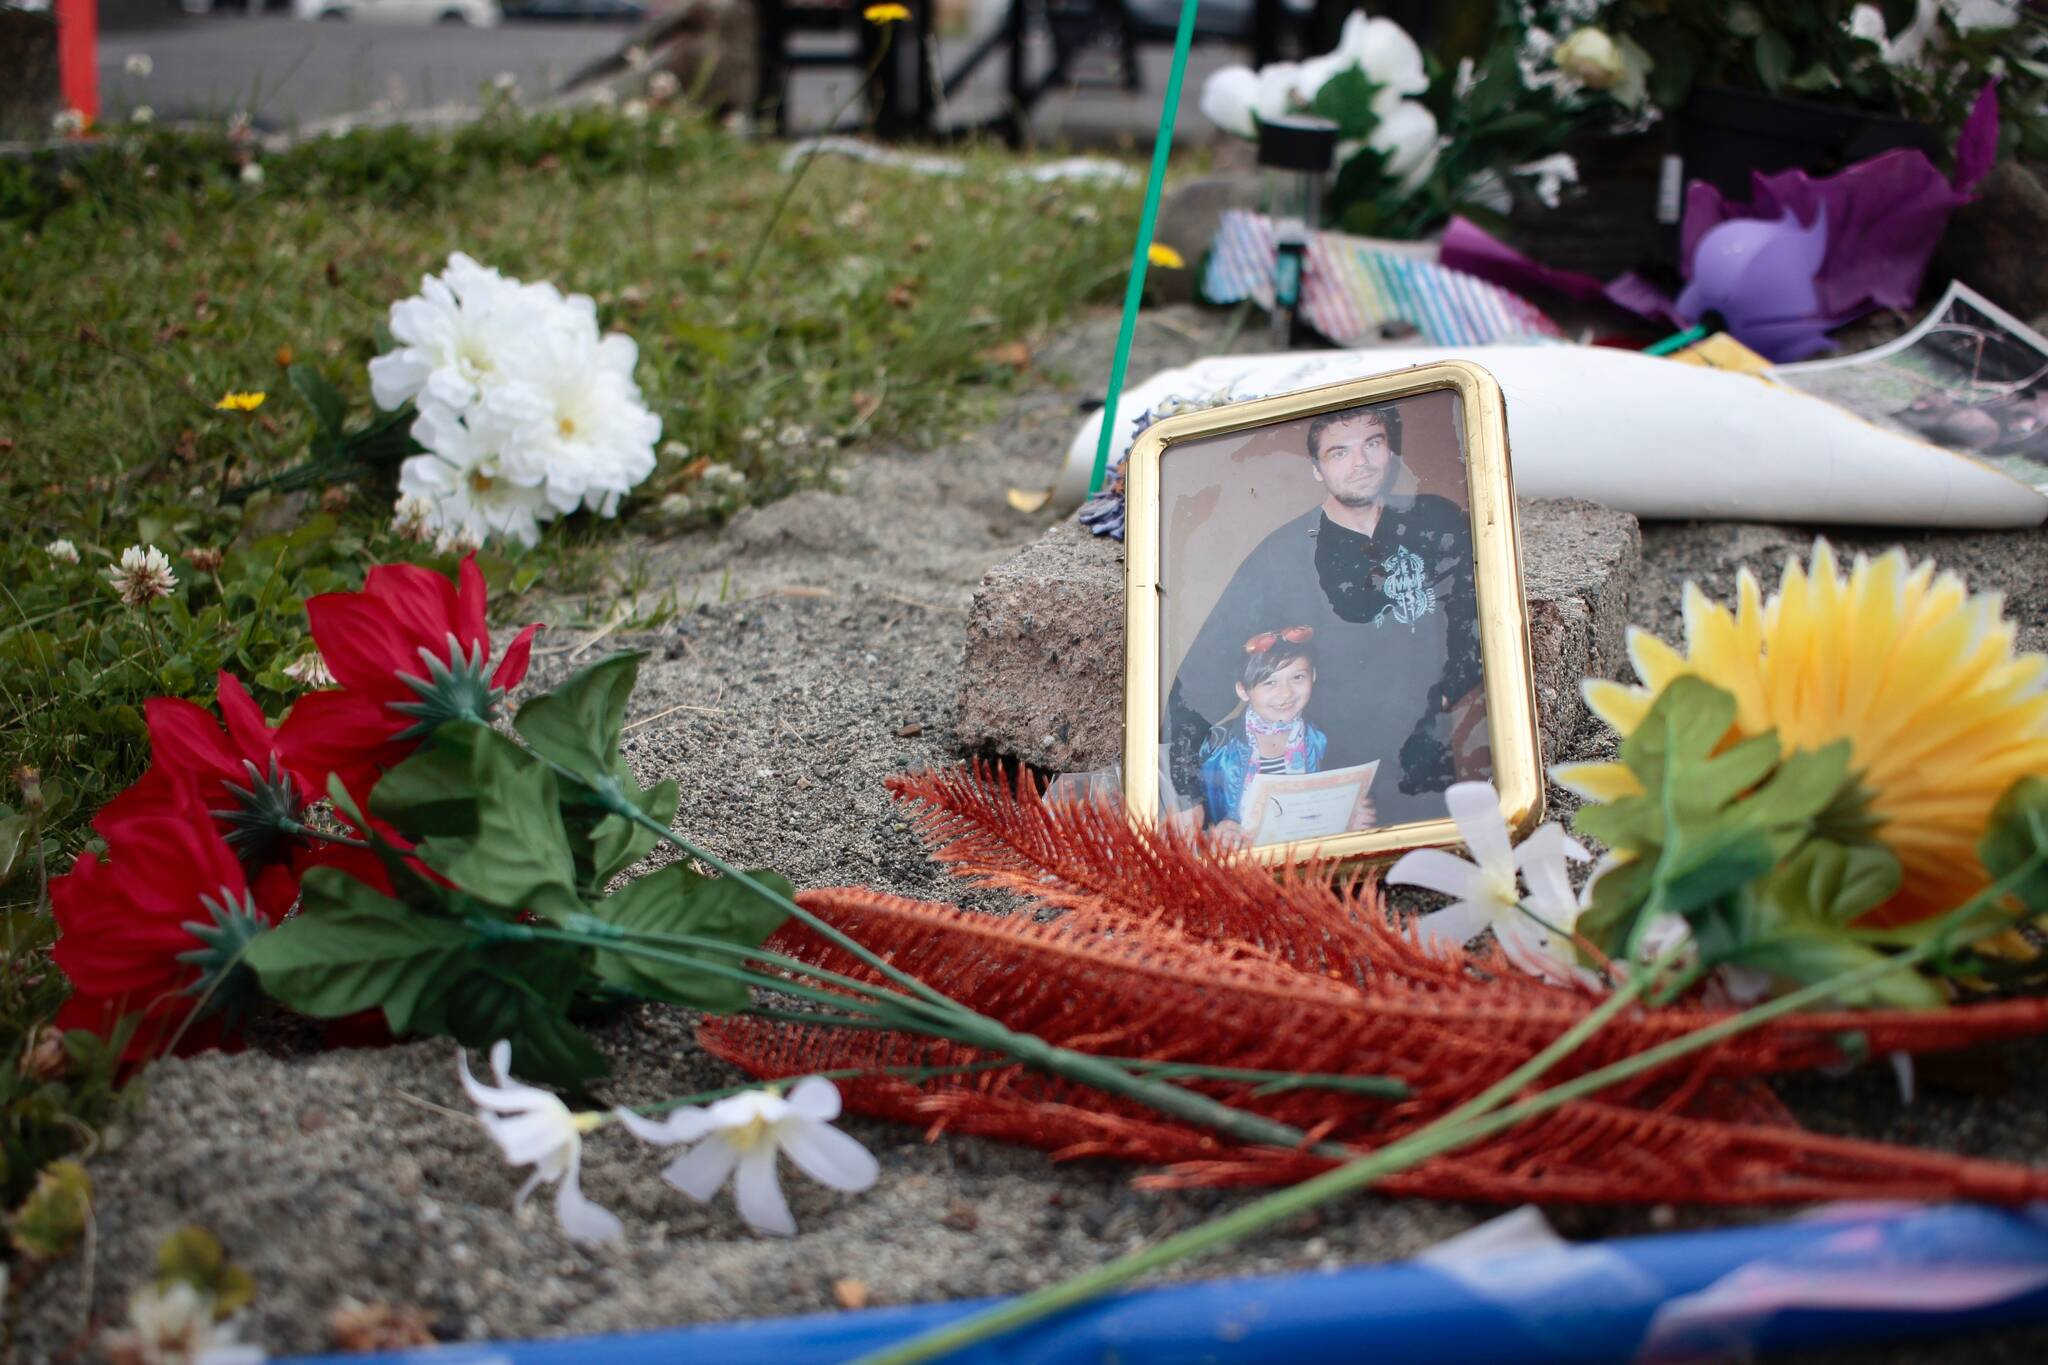 A memorial was set up for Jared Lowndes at the Campbell River Tim Hortons where the incident took place. Photo by Marc Kitteringham / Campbell River Mirror